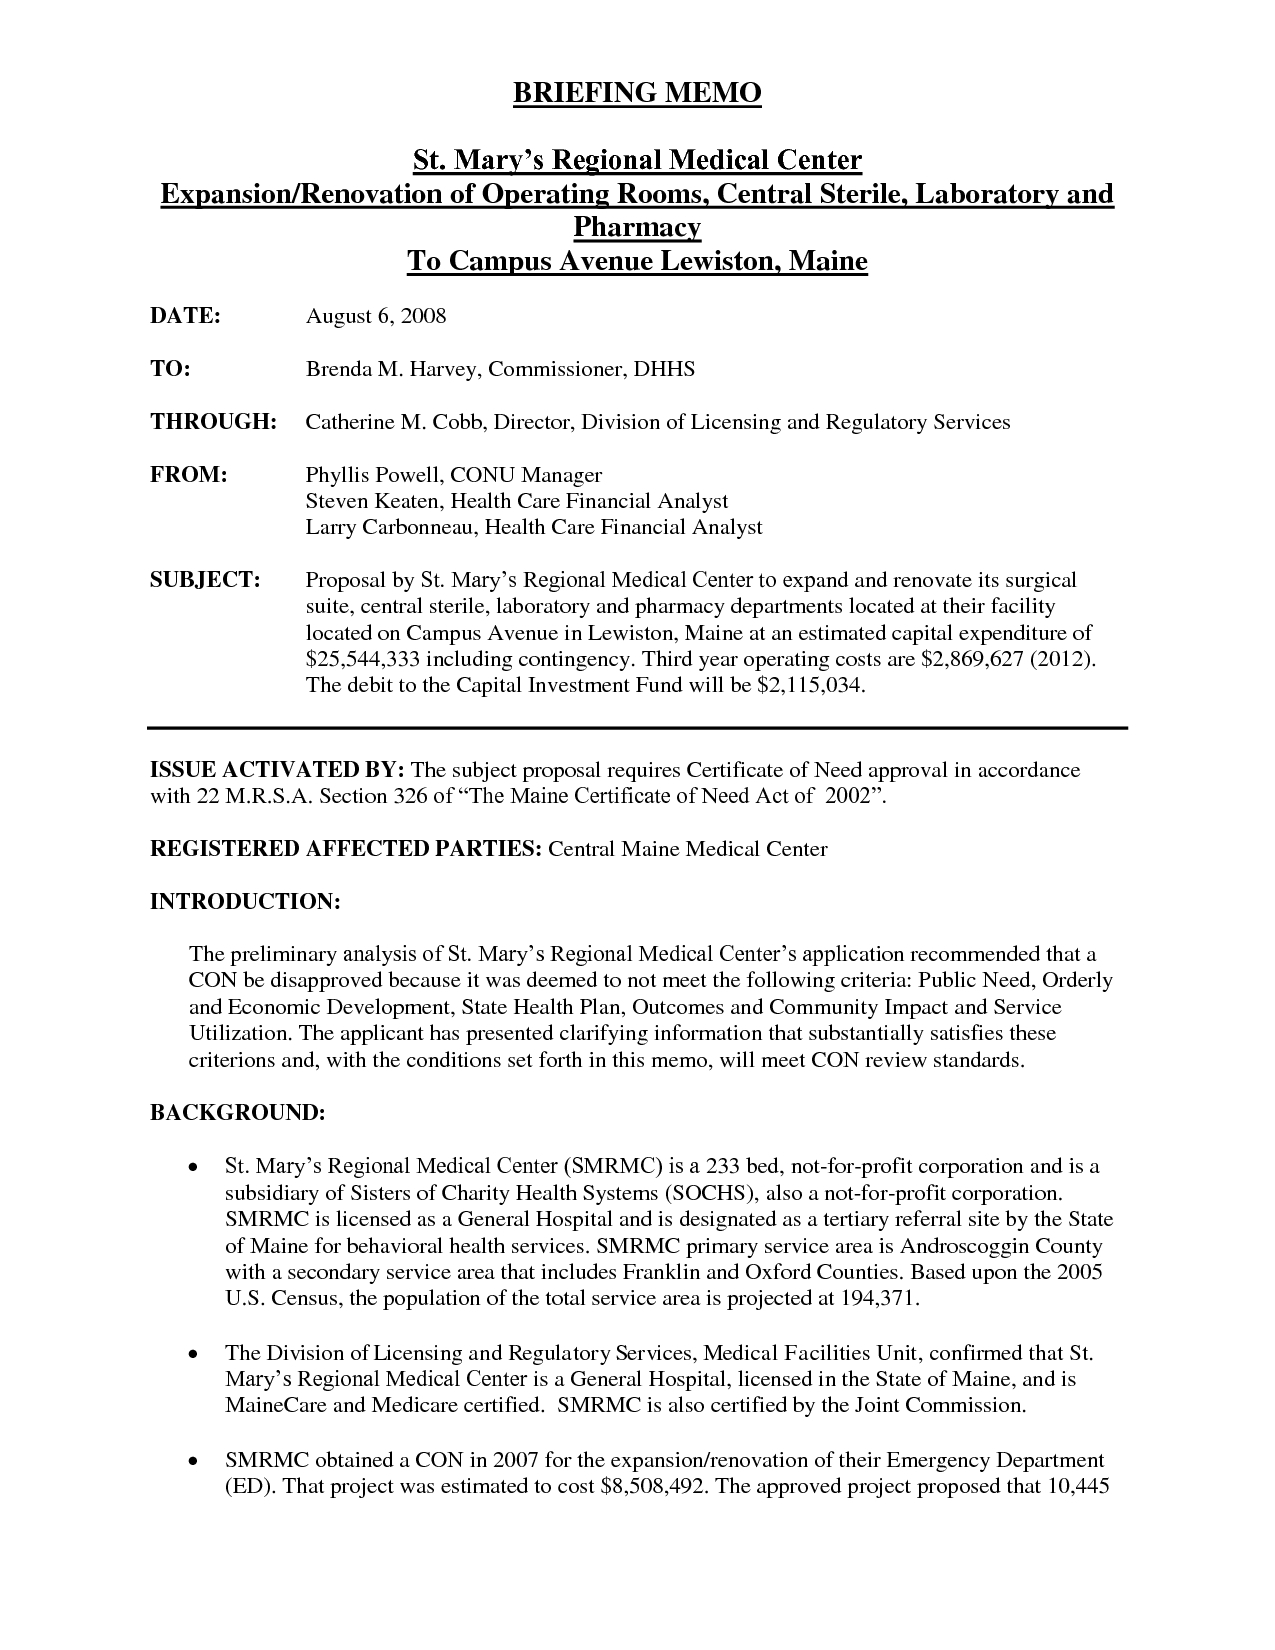 Informational Memo Examples | World Of Example in Informational Memo Examples 23156